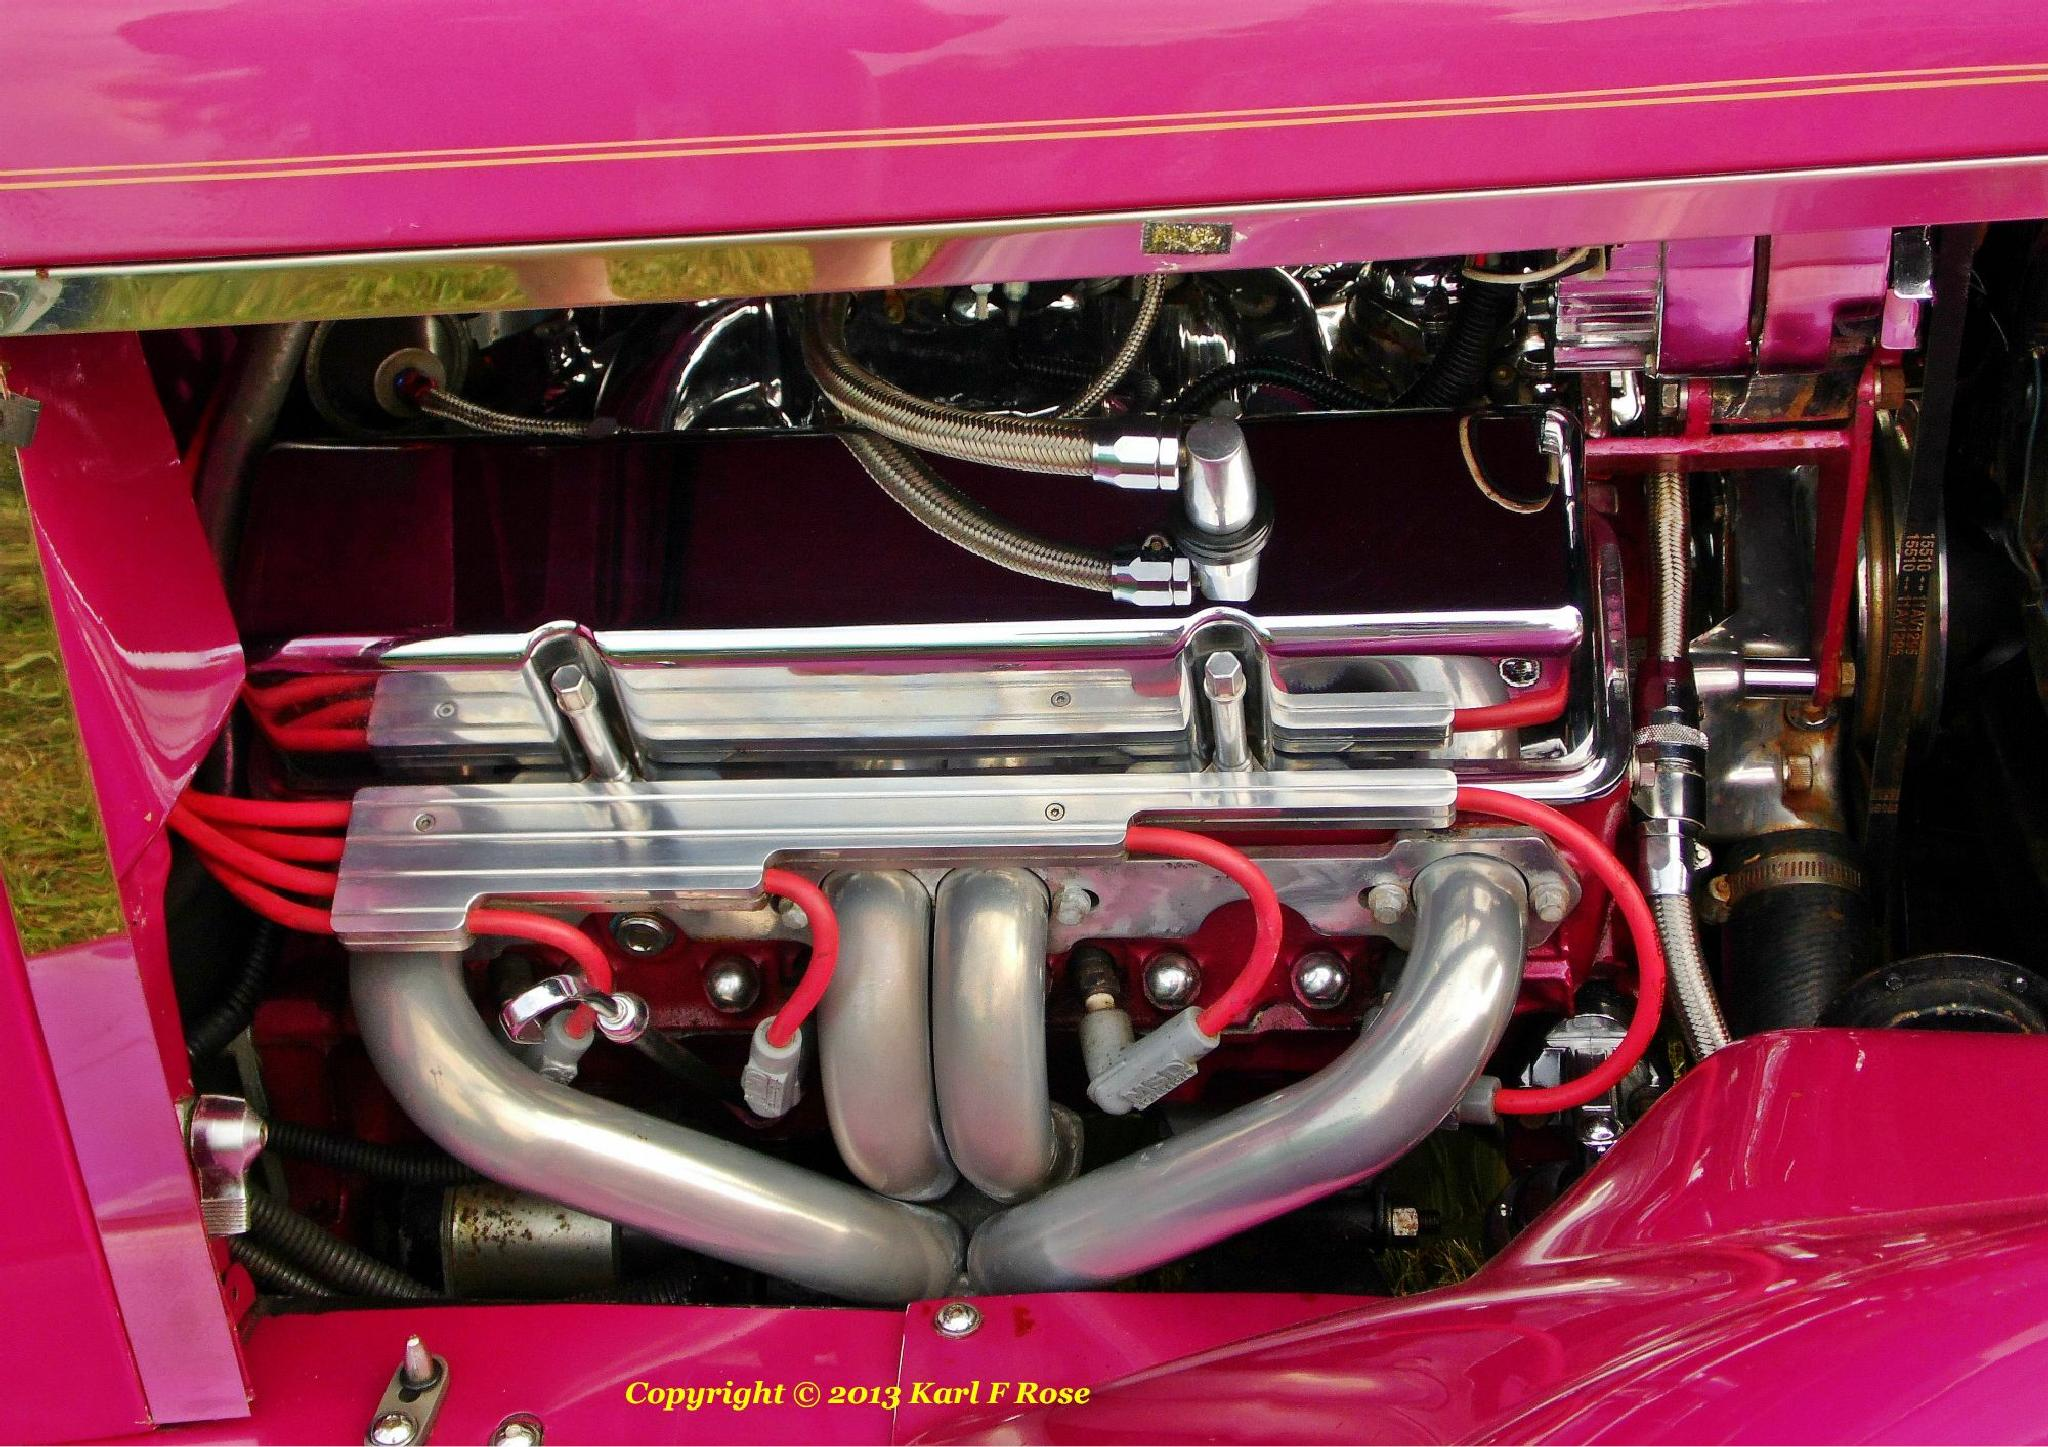 1928 Ford engine by rosebush1999